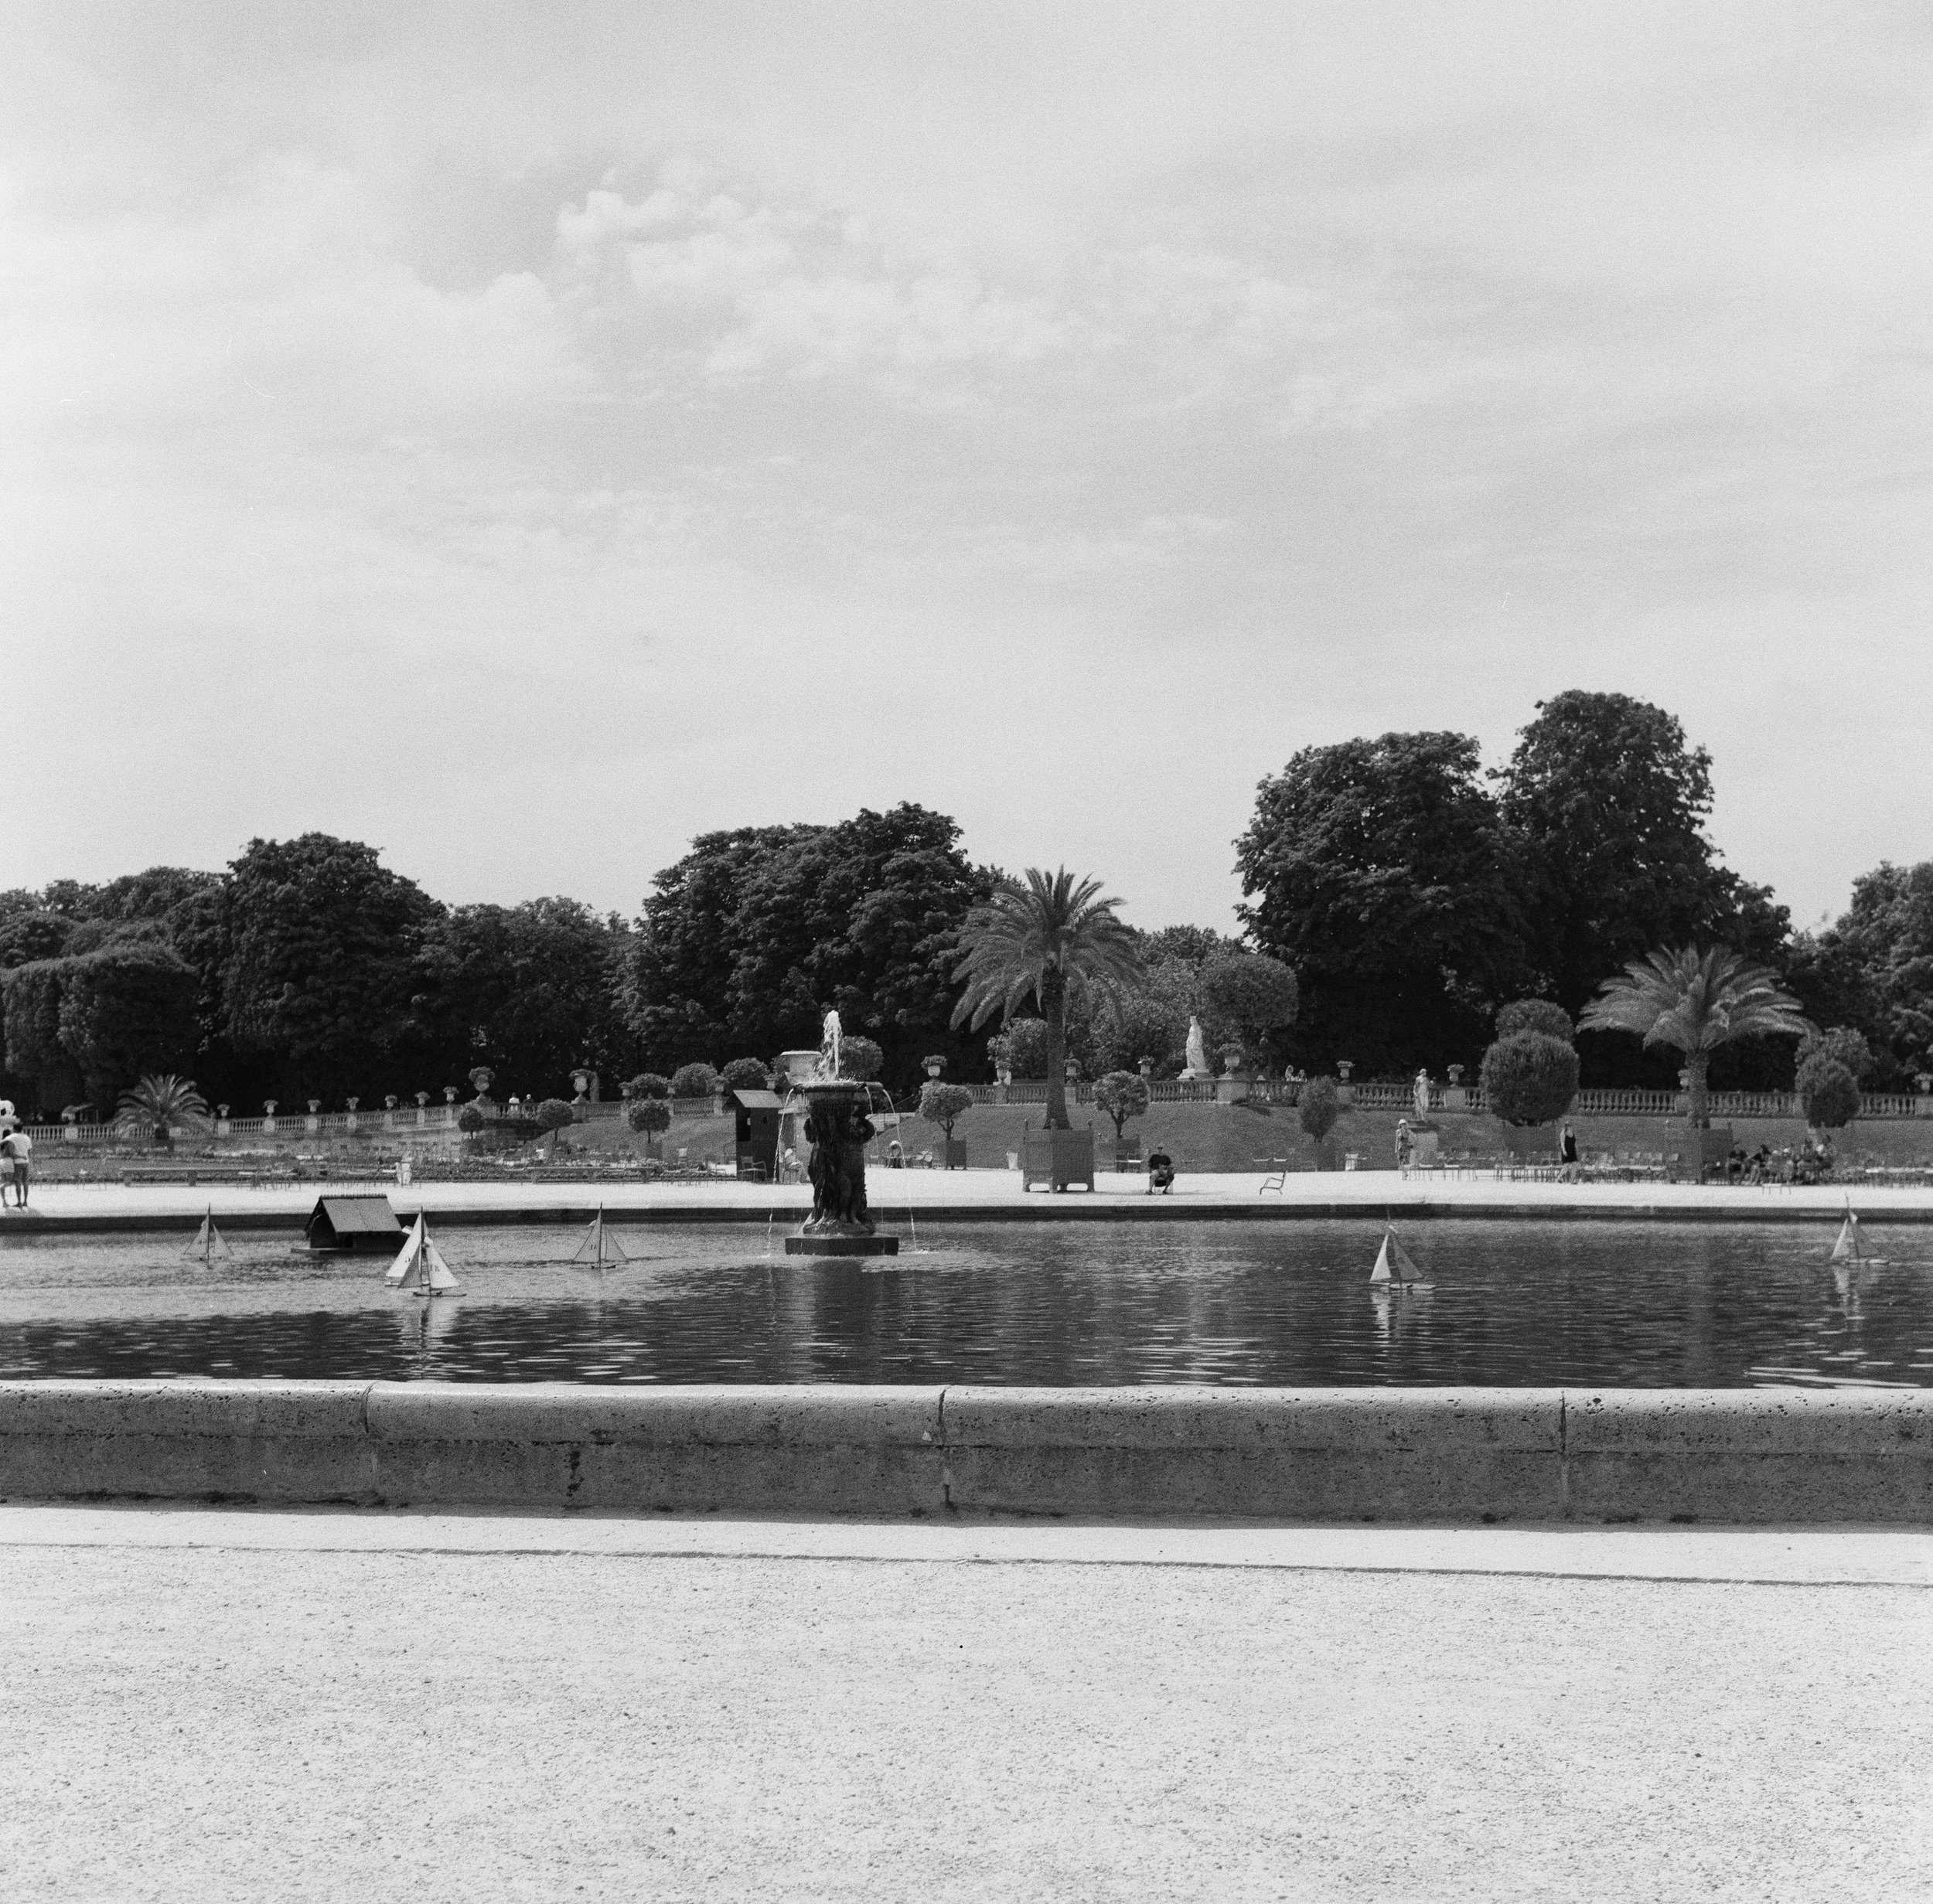 Toy boats in the fountain (2019) Jardin  du Luxembourg